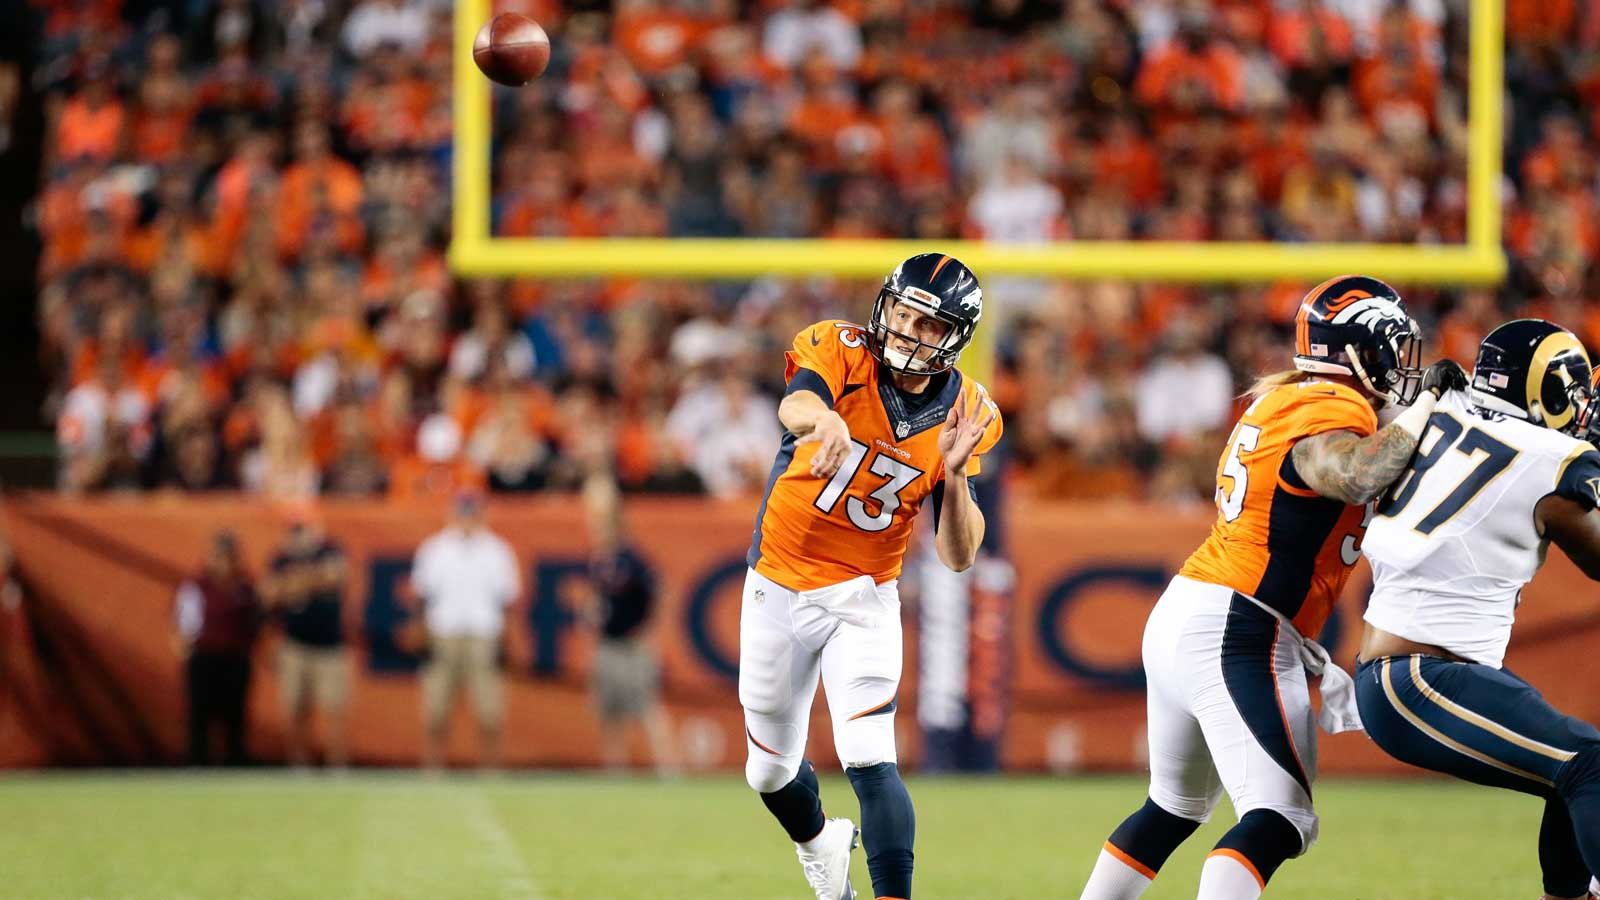 AFC West: Broncos still rule the division